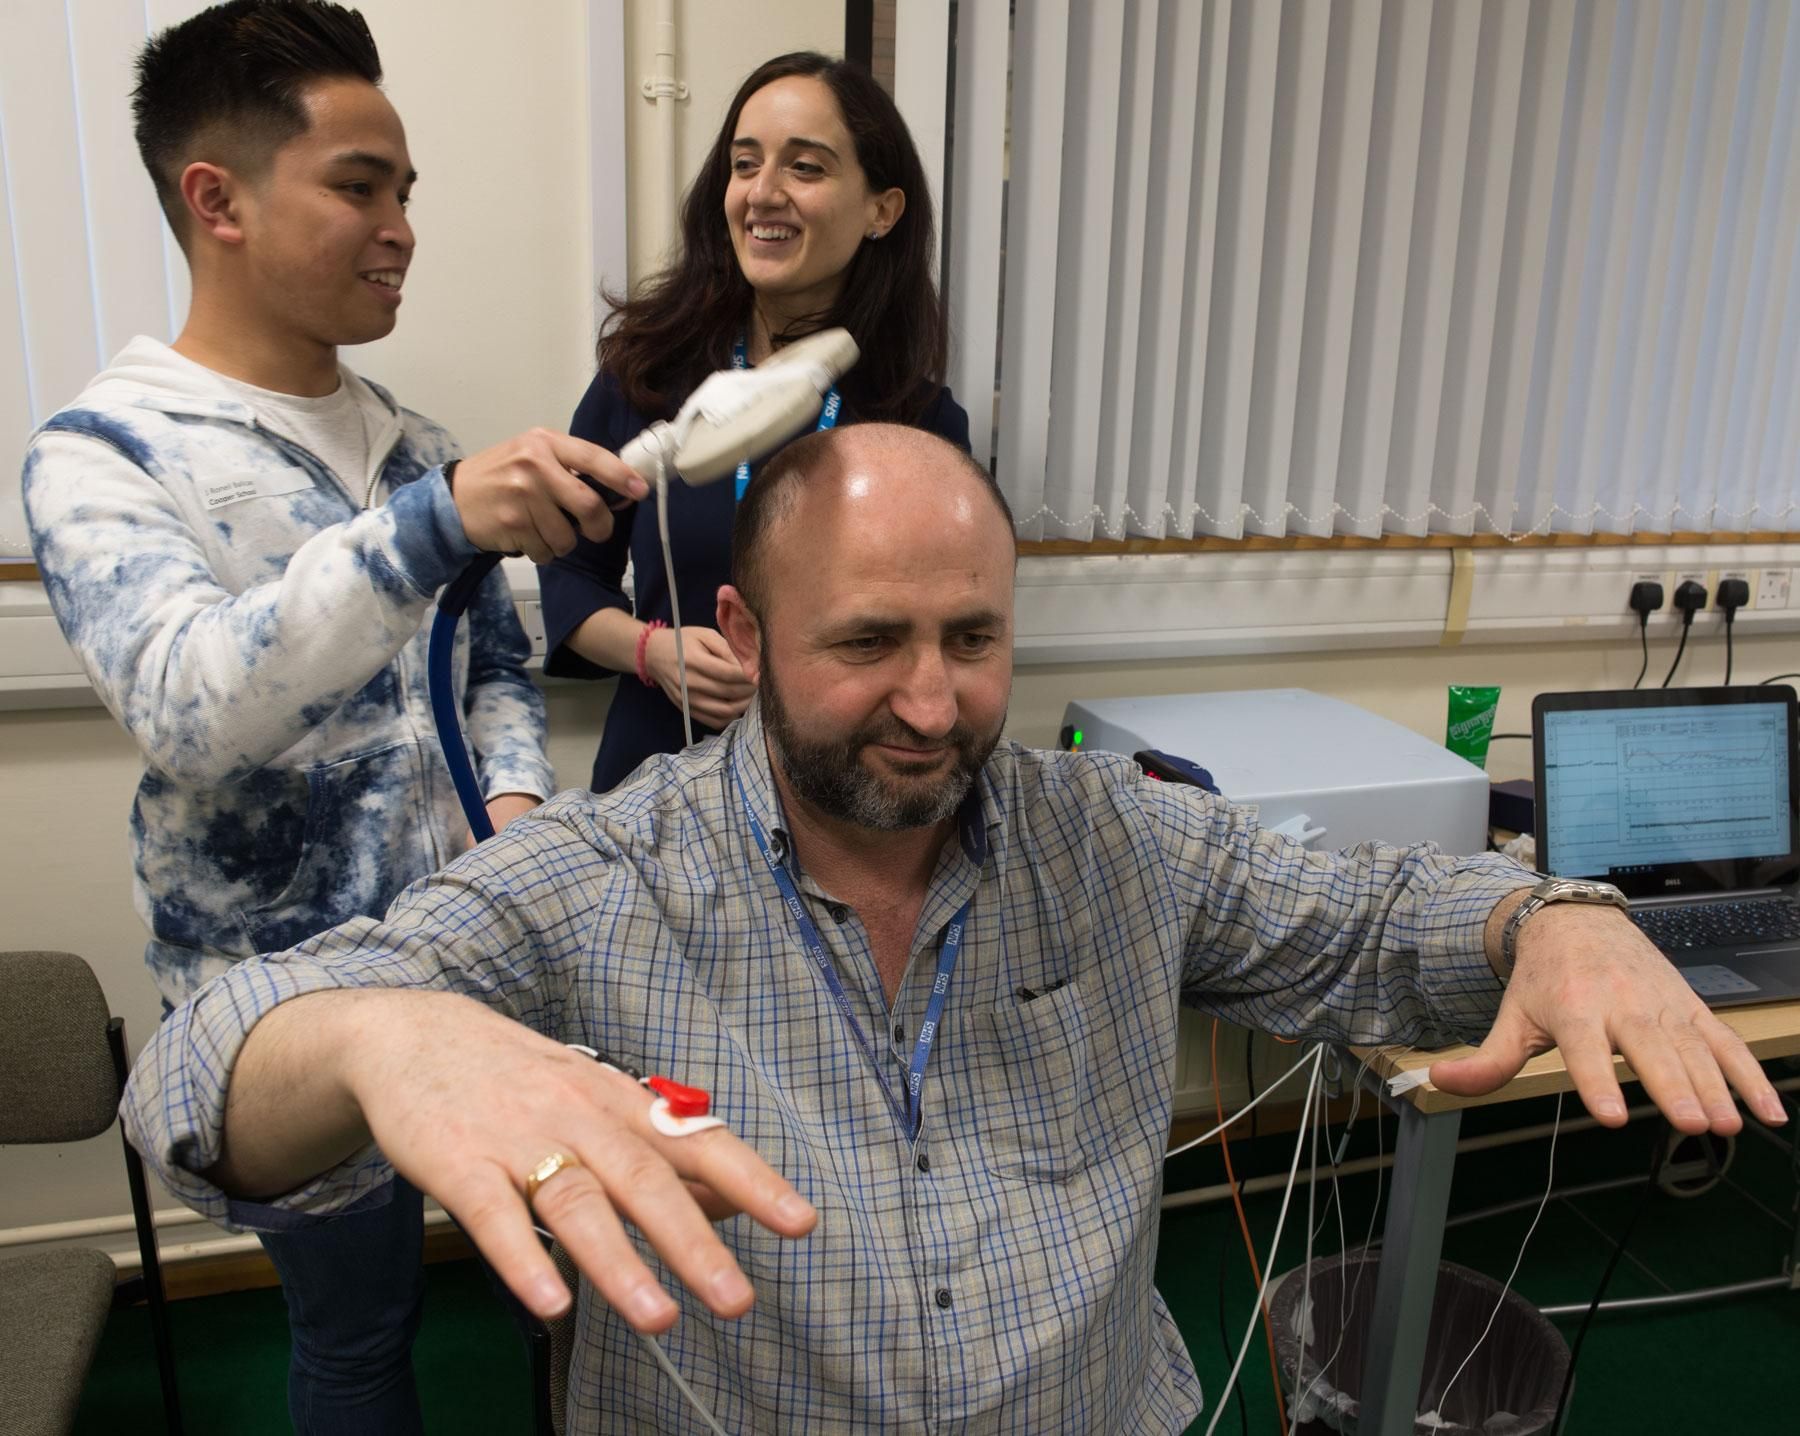 Schools Open Day 2018 at the MRC Brain Network Dynamics Unit is stimulating for the brain – in many ways!